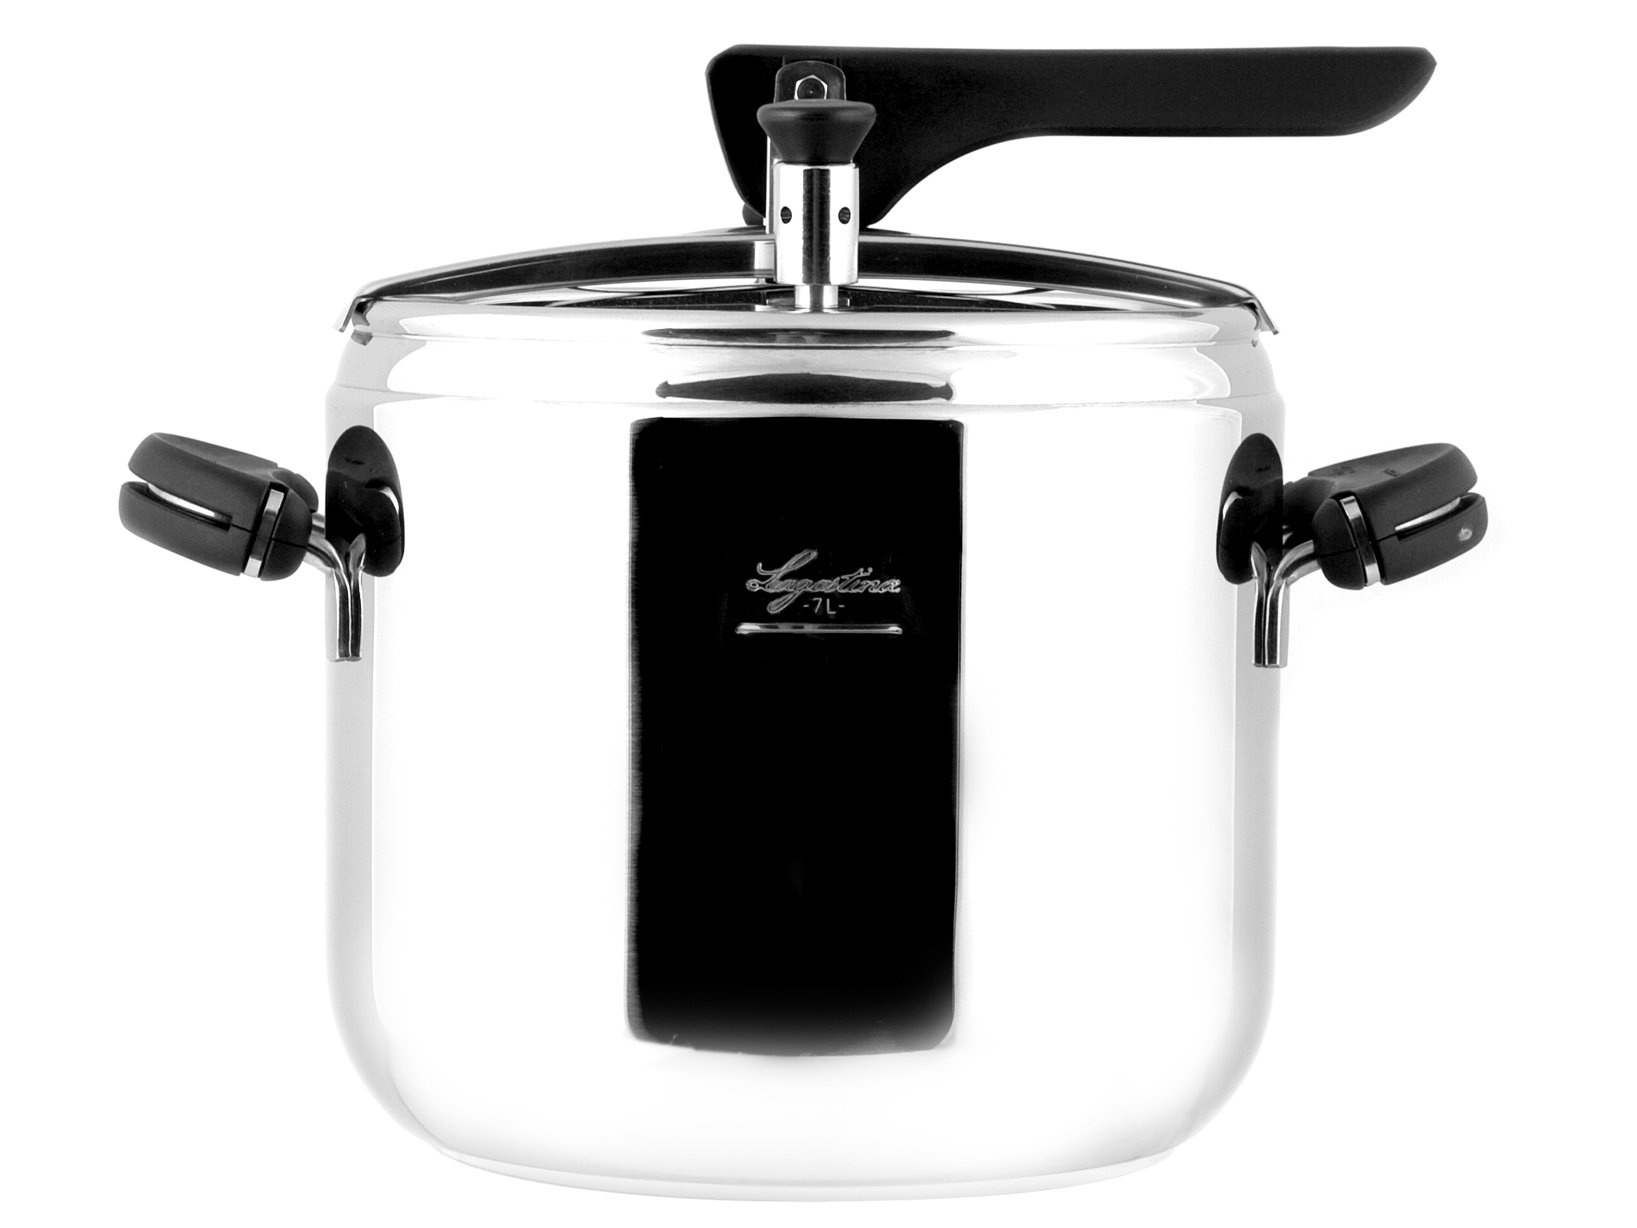 Lagostina Kitchen Idea: Pressure Cooker Mia Irradial Bottom , 7 Litres, Diameter 22cm. Receptacle And Basket Included